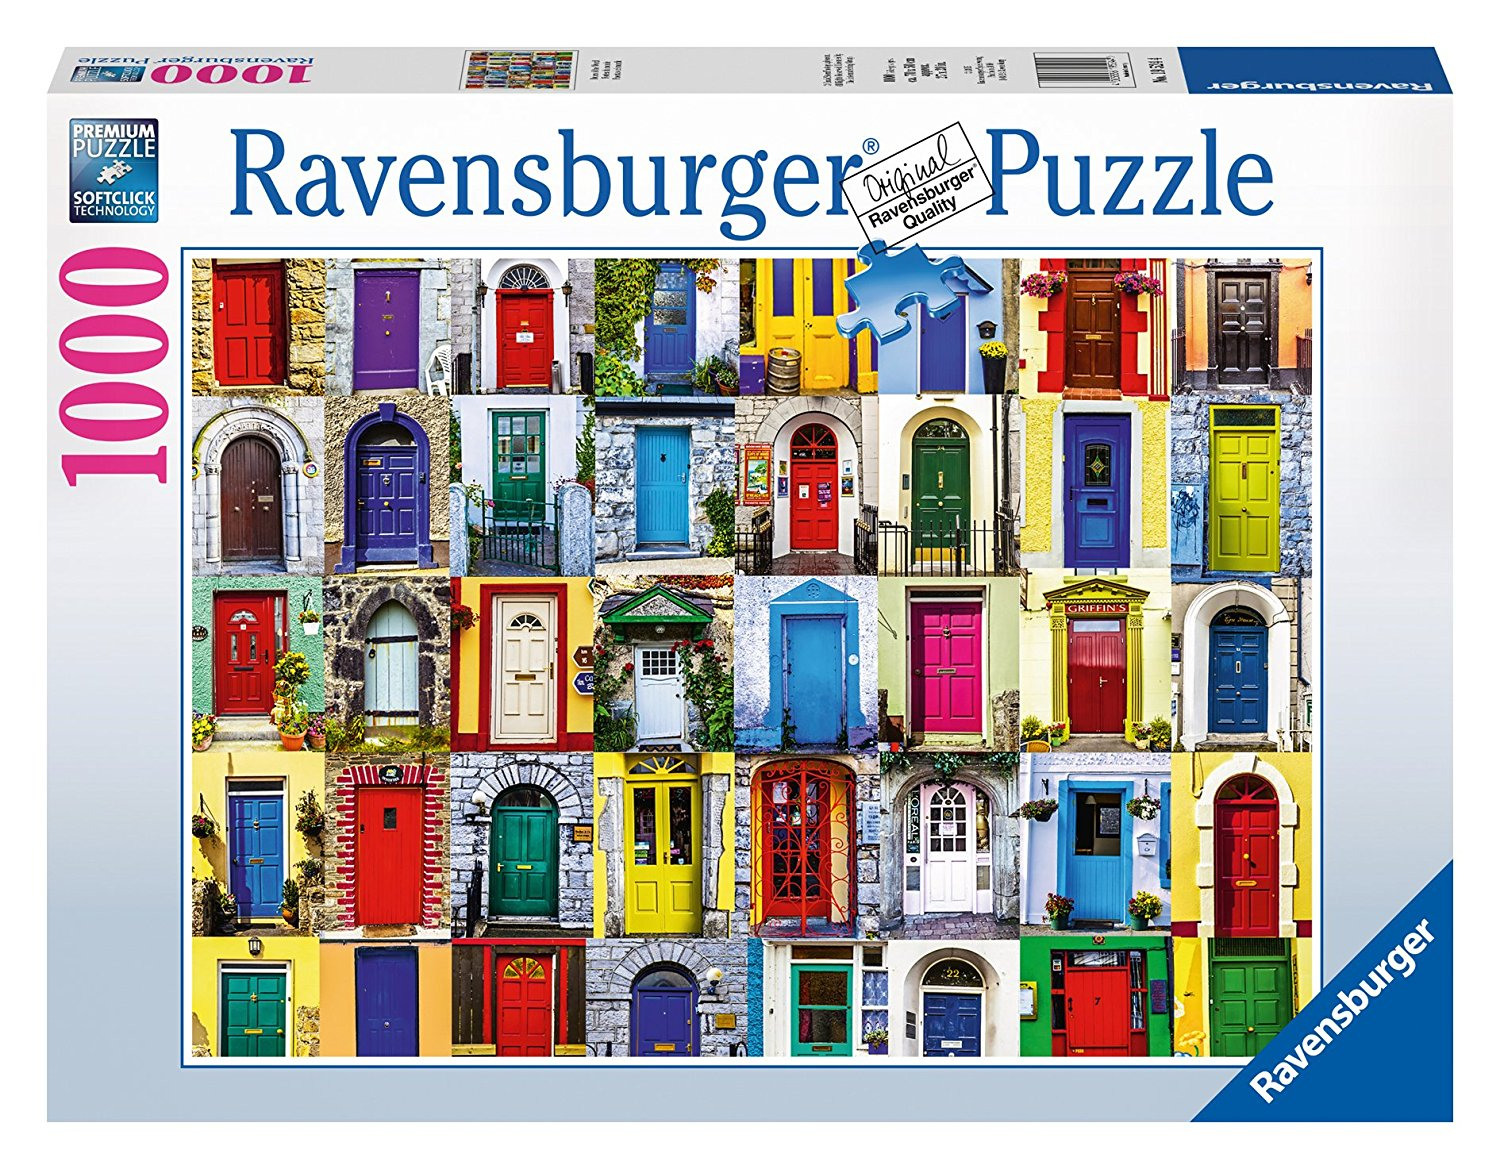 Doors of the World Puzzle (1000-Piece), USA, Brand Ravensburger by